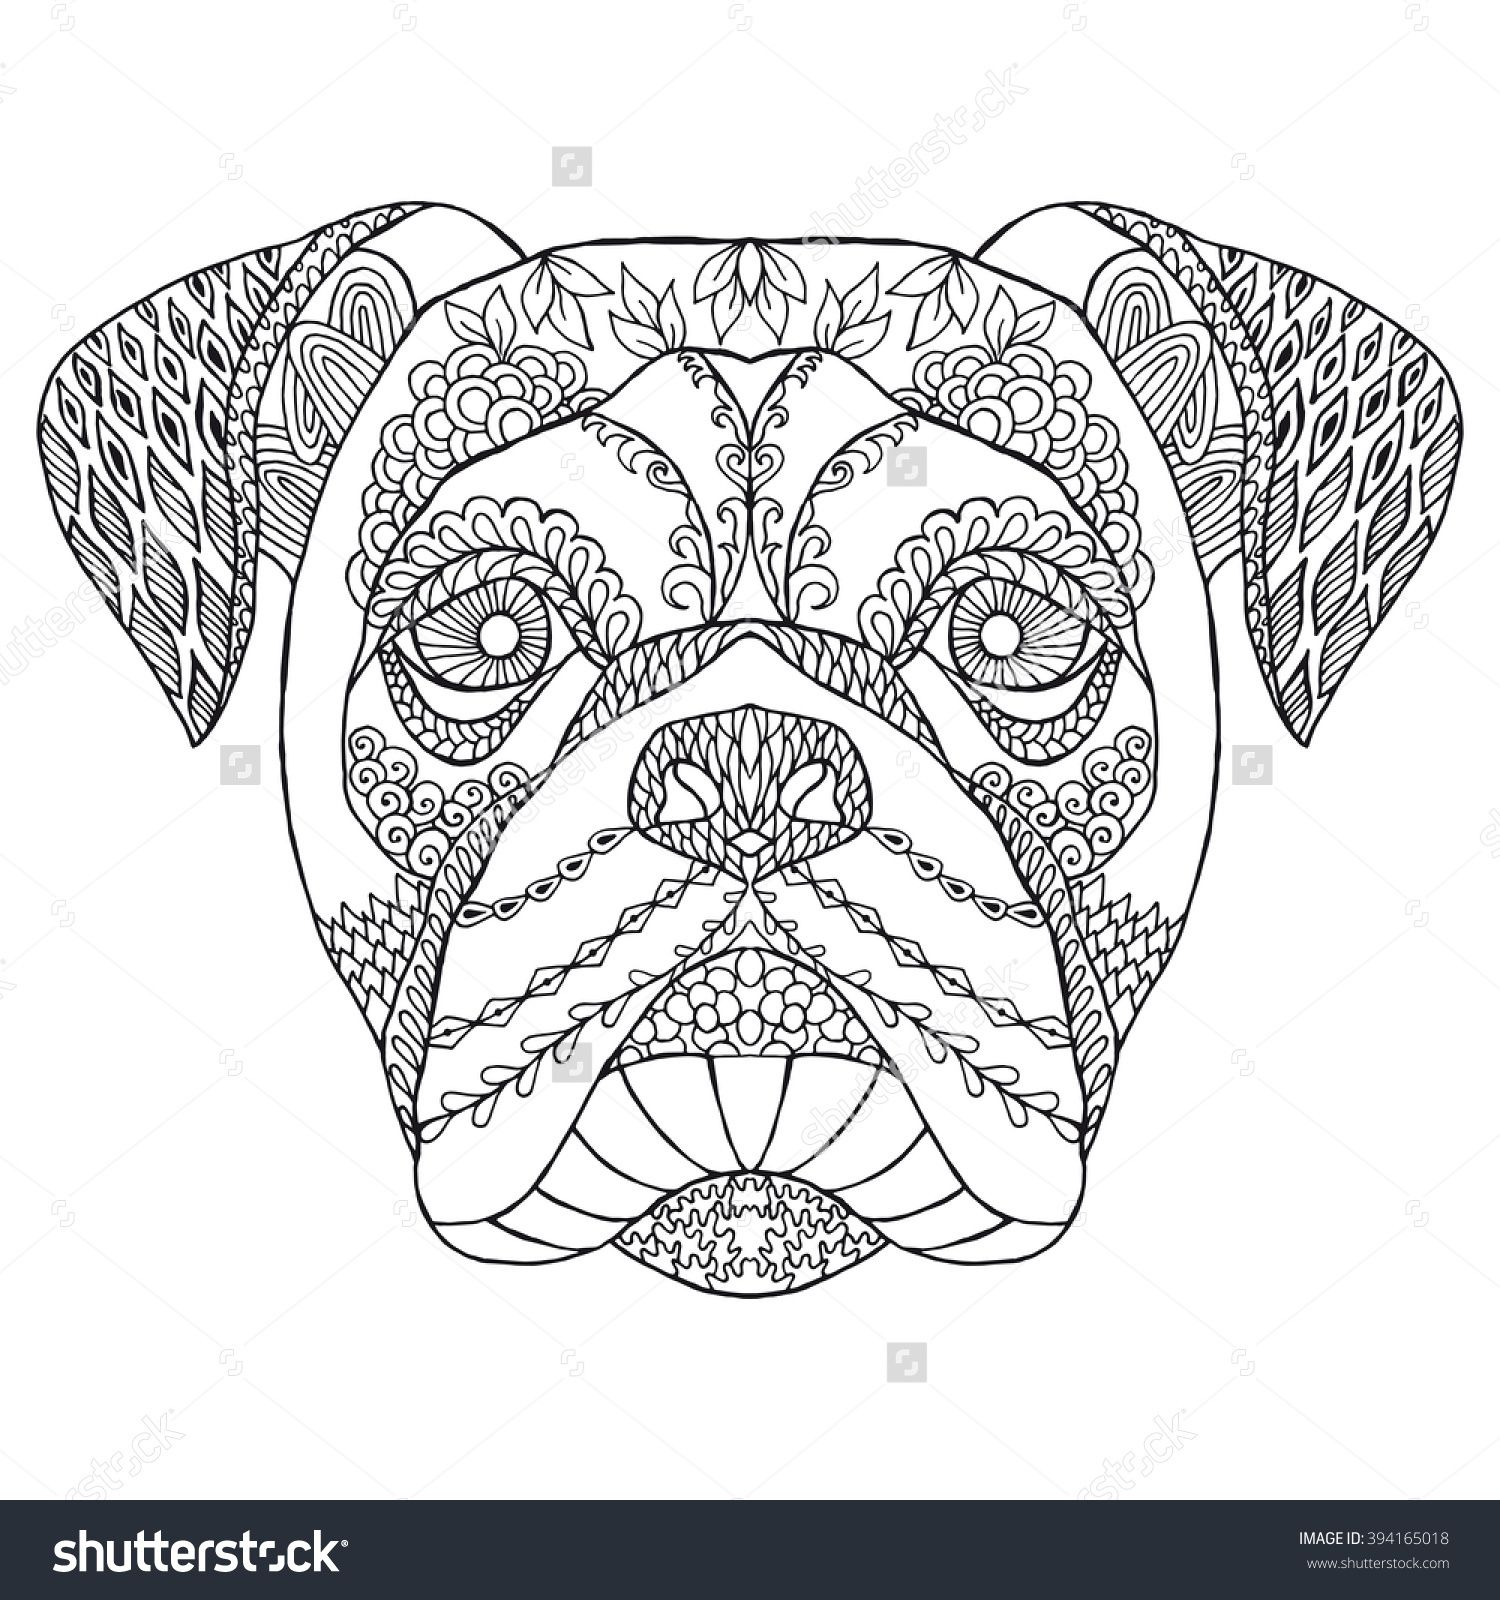 Boxer - Energetic and Funny | Hand drawn, Dog and Illustrations